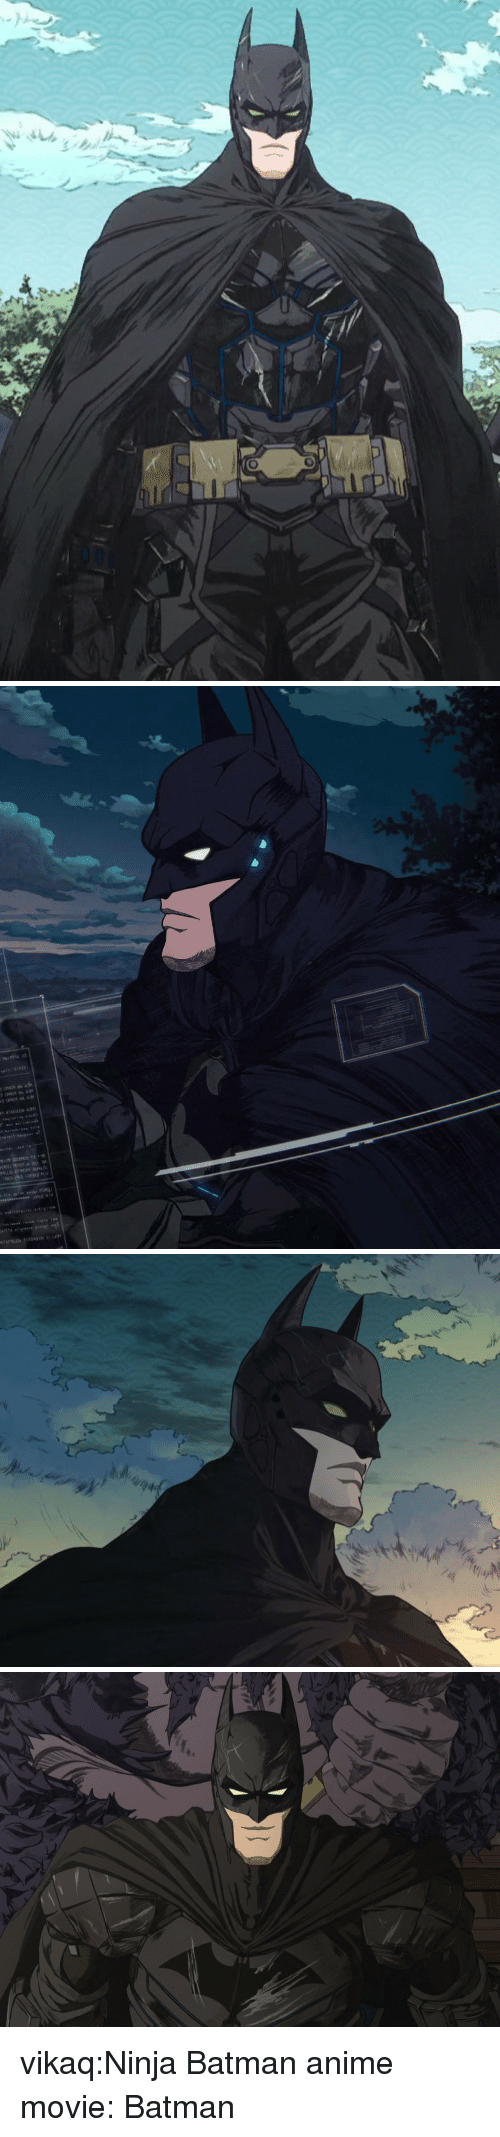 Anime, Batman, and Tumblr: vikaq:Ninja Batman anime movie: Batman